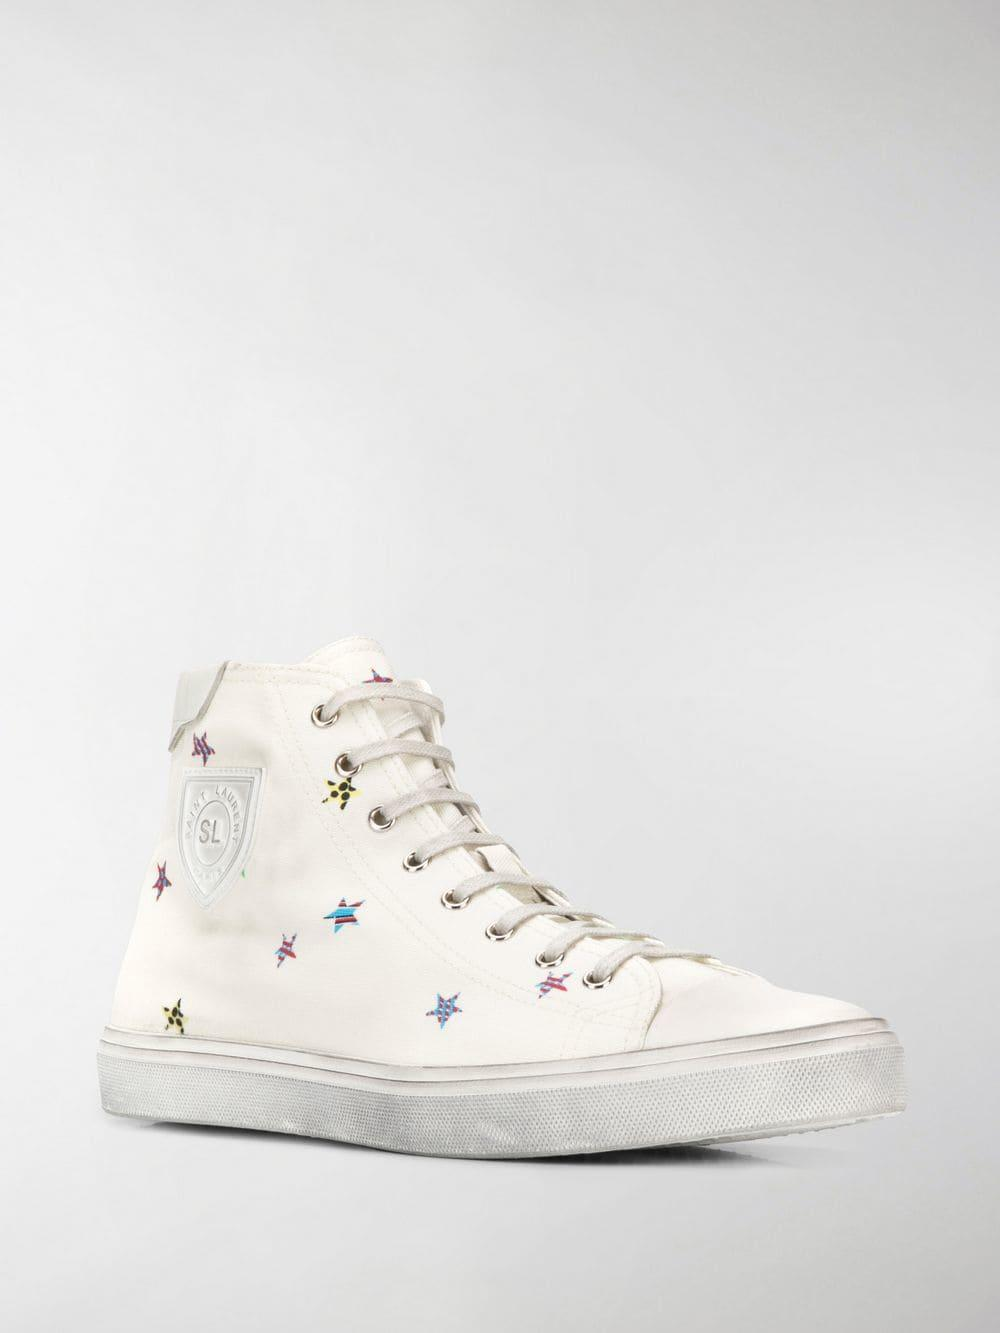 f5e099a7e3 Lyst - Saint Laurent Bedford Star-print Sneakers in White for Men